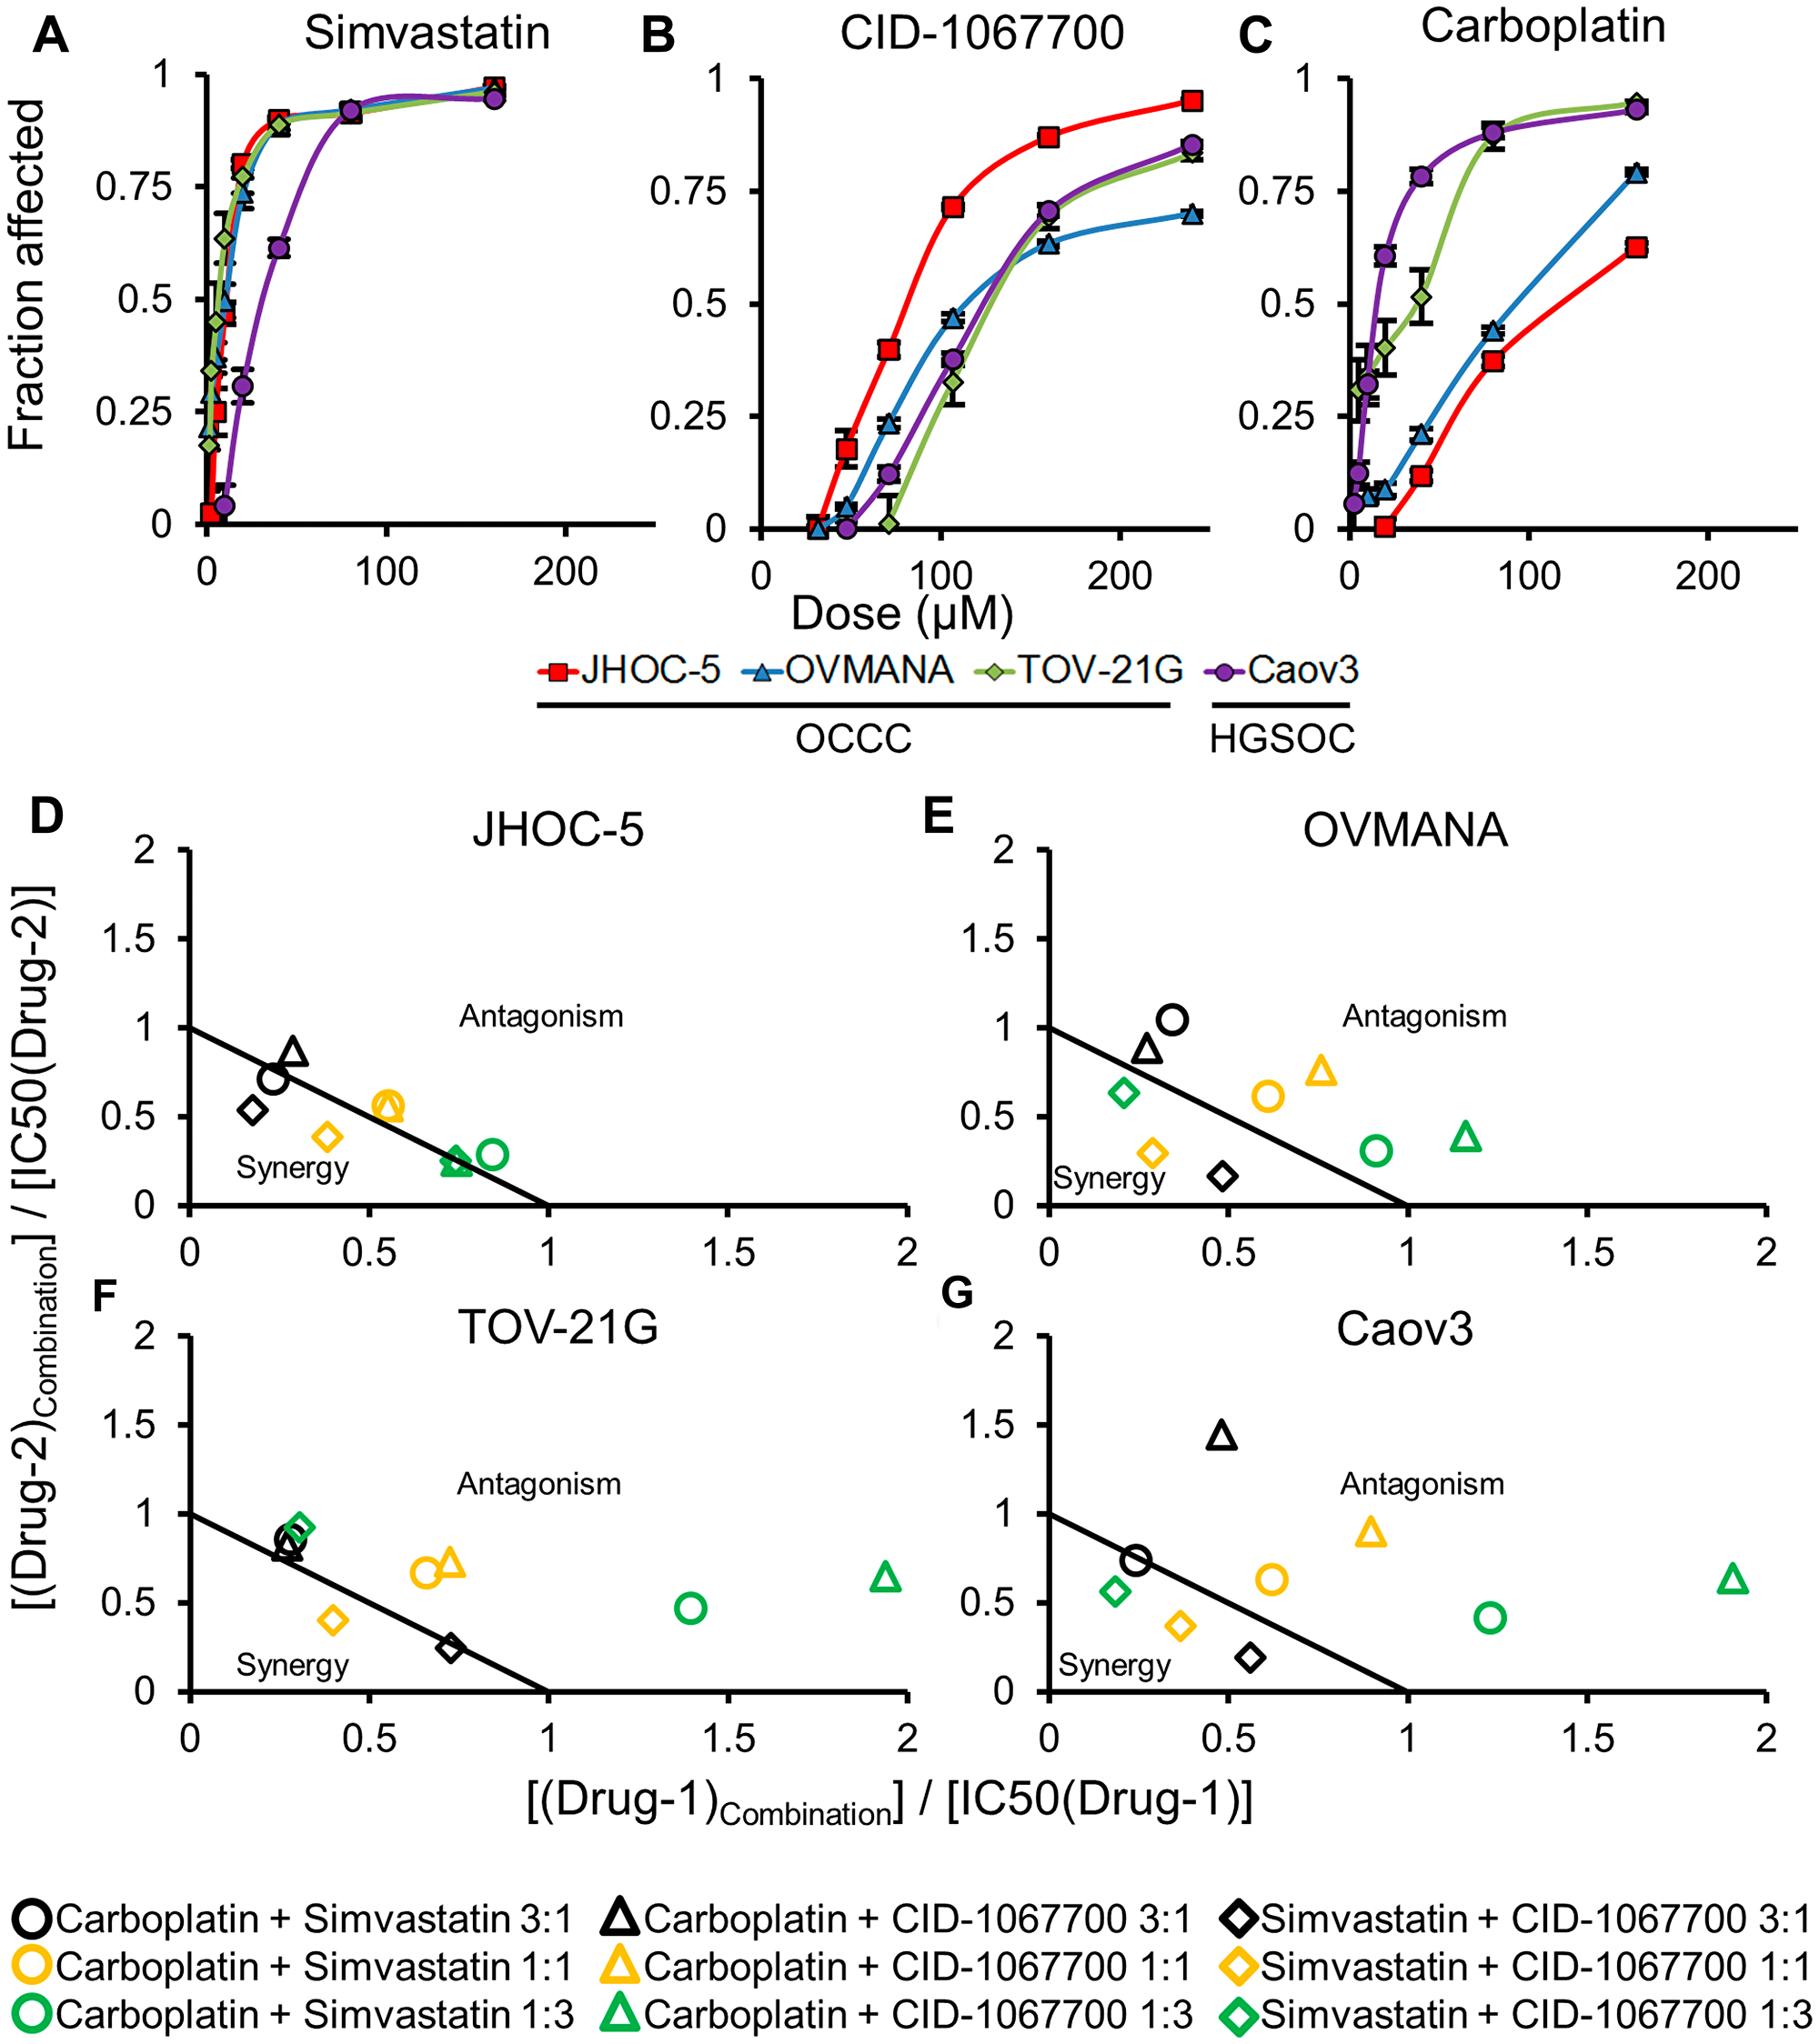 Concentration response curves (top panels) and normalized isobolograms (bottom panels) for treatments in cell lines.